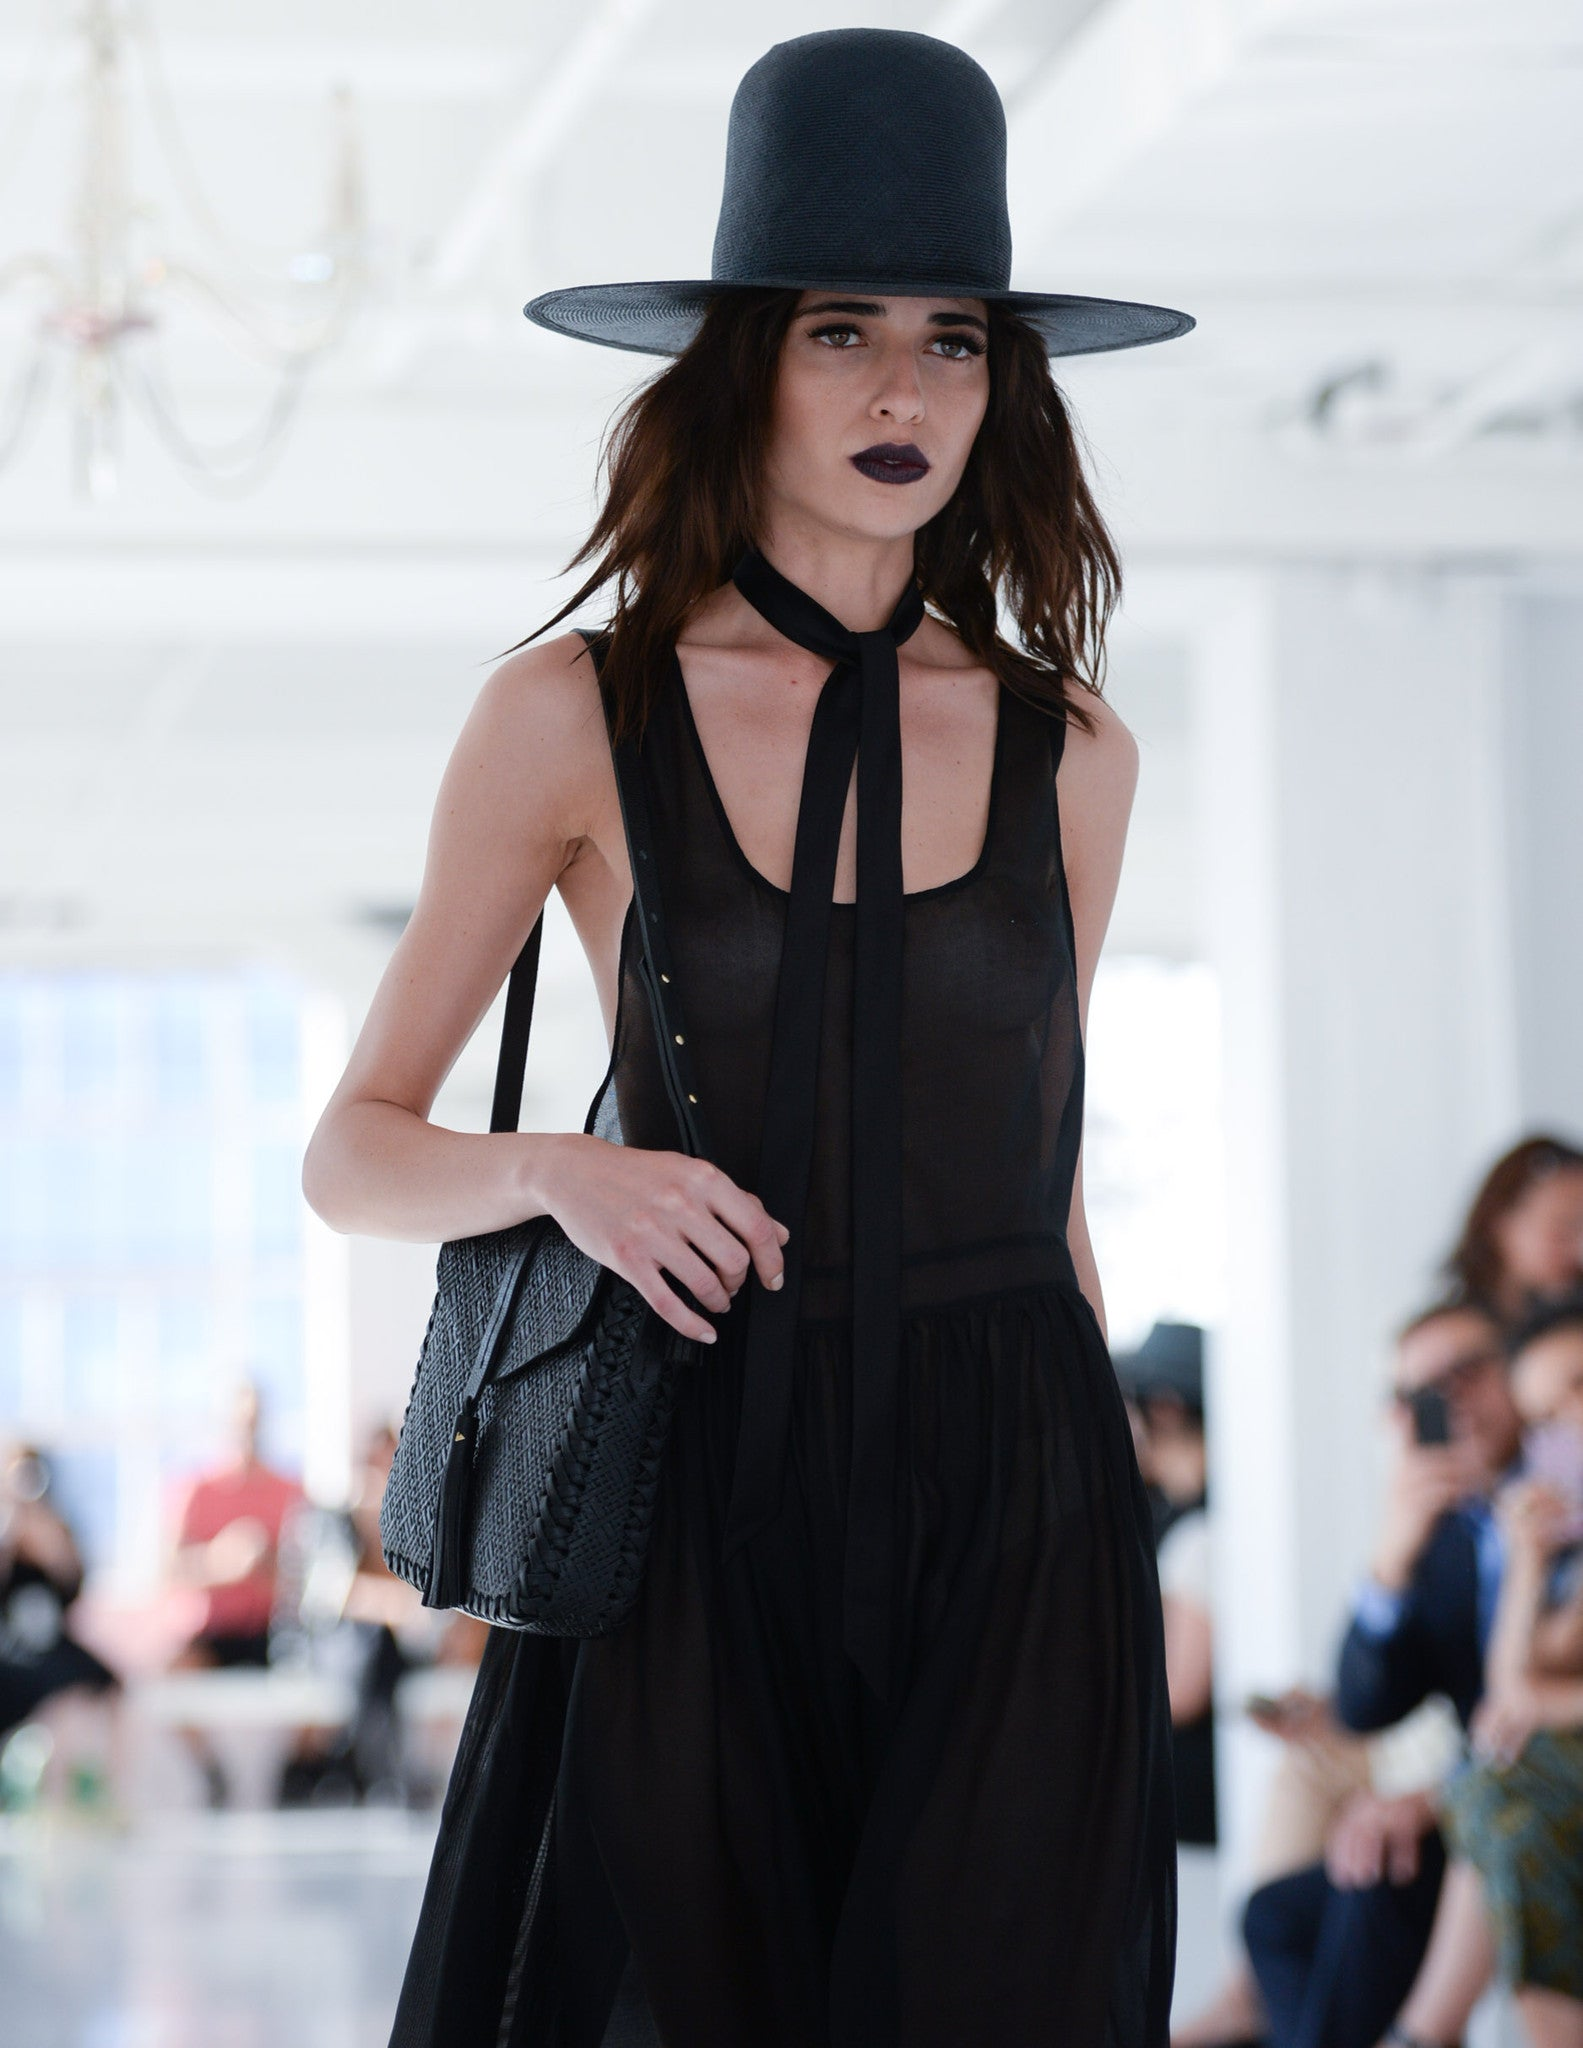 Vanessa M.  IMG Model Wendy Nichol Clothing Designer Ready to Wear Fashion Runway Show SS16 Guardians of Light Magic Hour Cross Back apron Dress Sheer Sleeveless Silk Black Dark Navy Custom Tailored Made to Measure Order Handmade in NYC  Straw Wide Brim Hat Silk Tie Choker Necklace